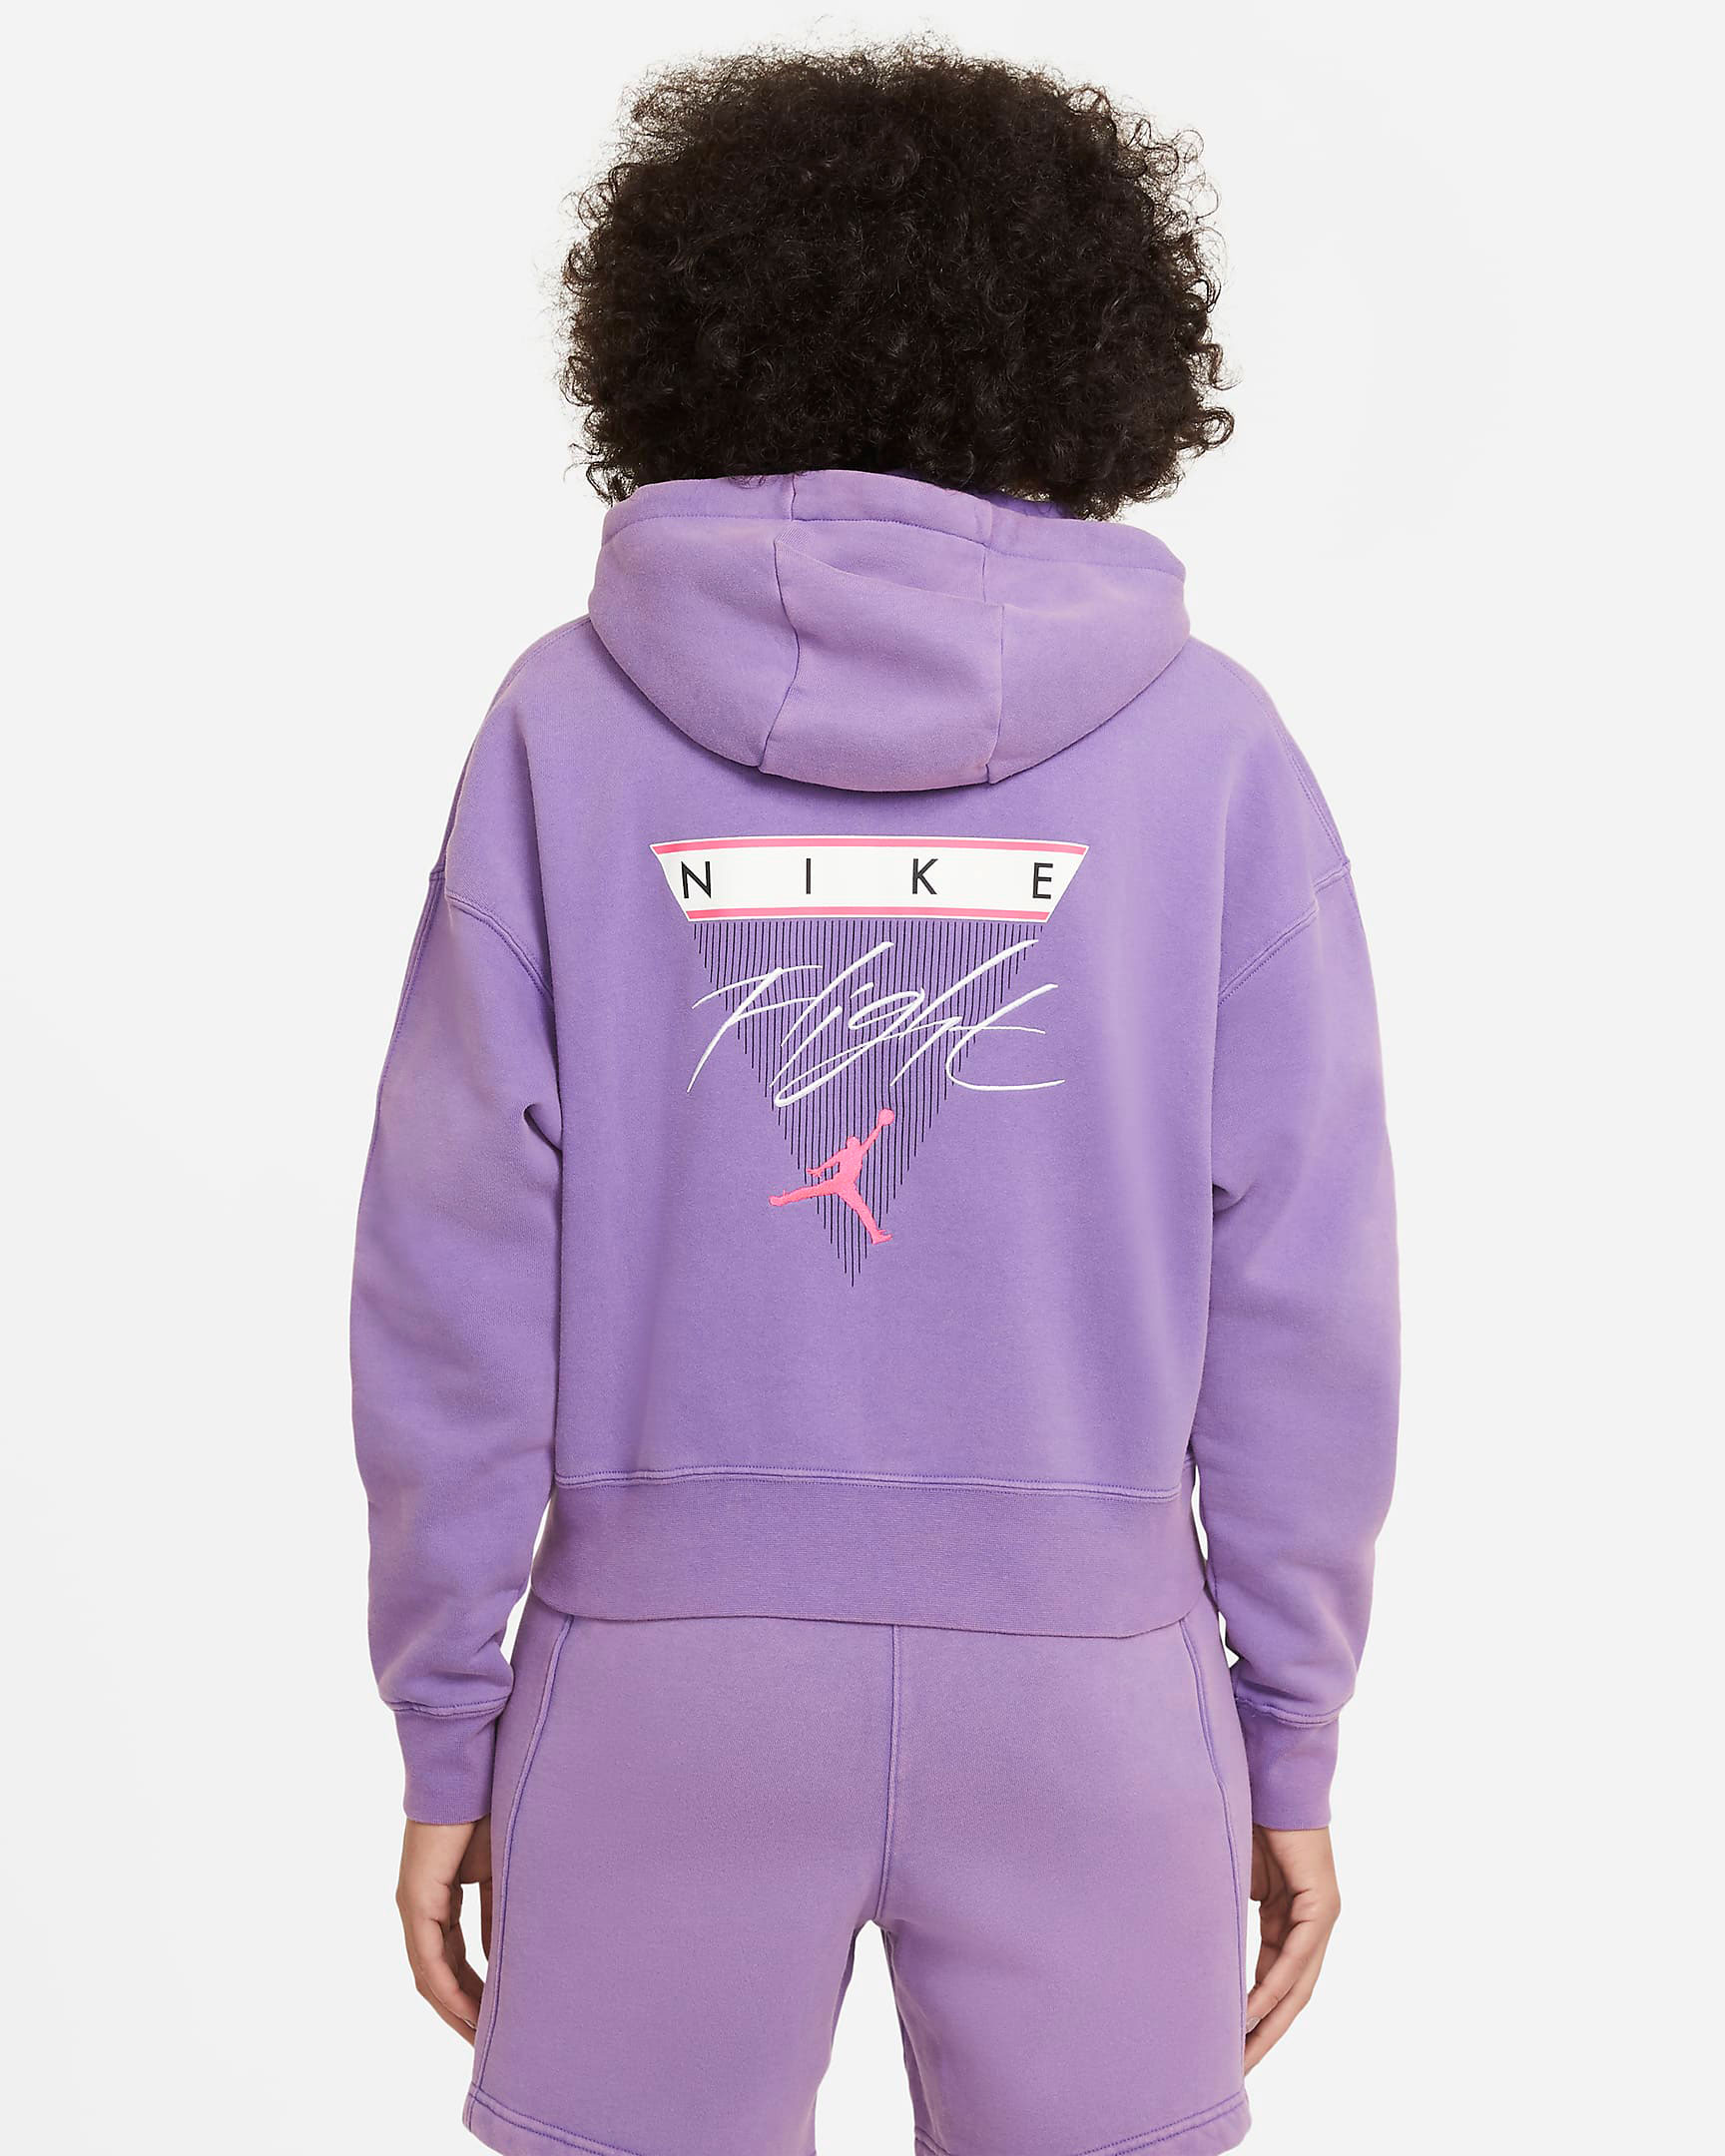 jordan-flight-womens-hoodie-purple-pink-2